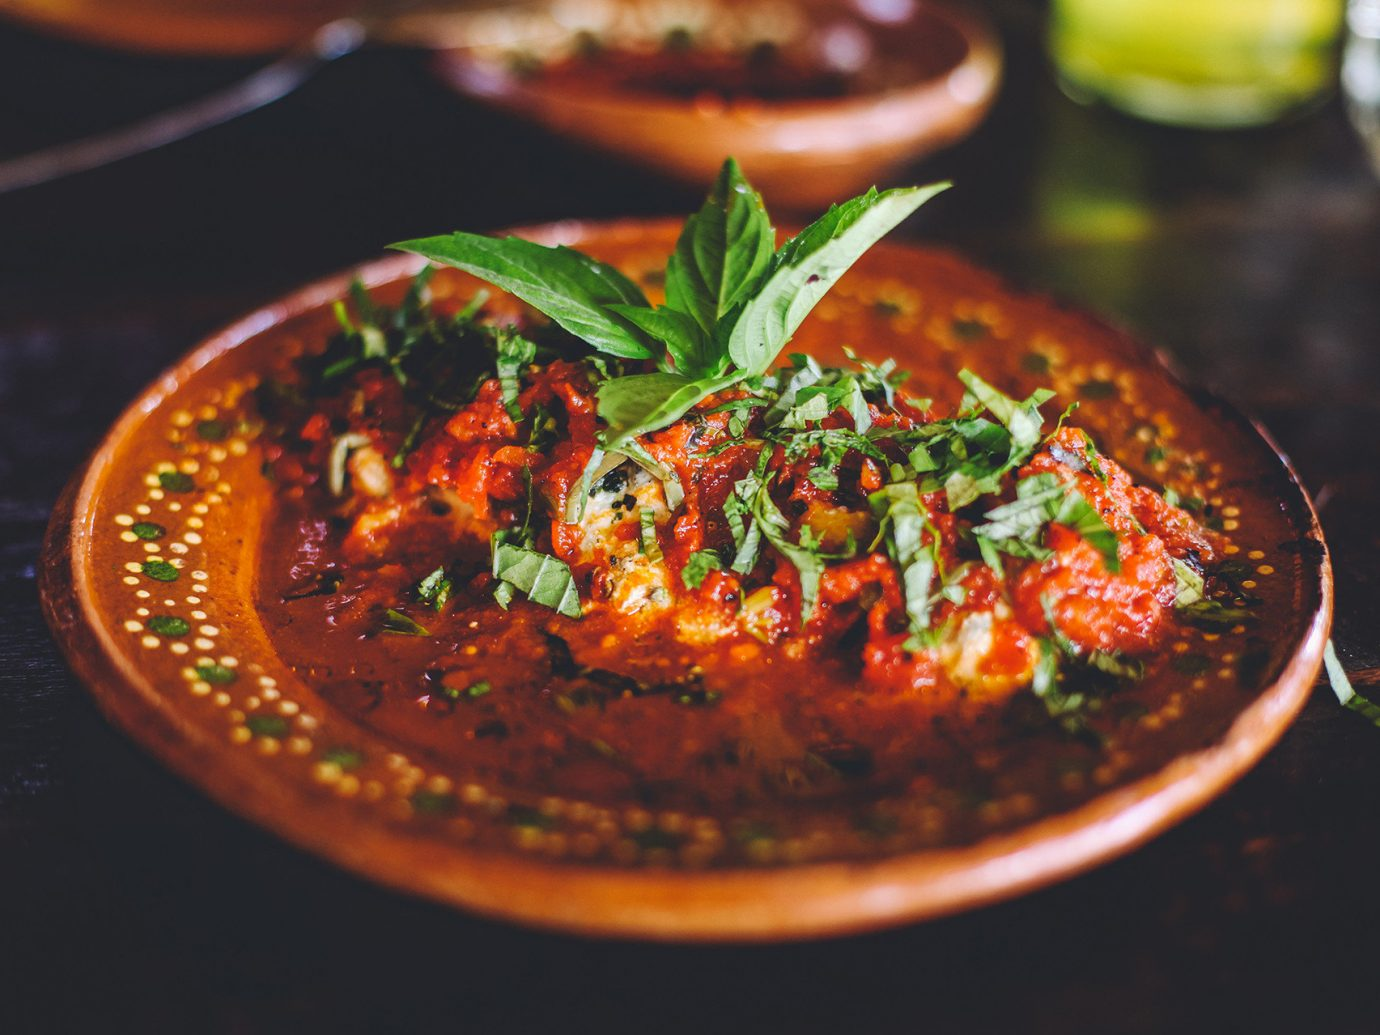 Cultural culture Dining Eat food Food + Drink mexican traditional Travel Tips Trip Ideas dish indoor cuisine asian food produce indian cuisine plant different close curry stew